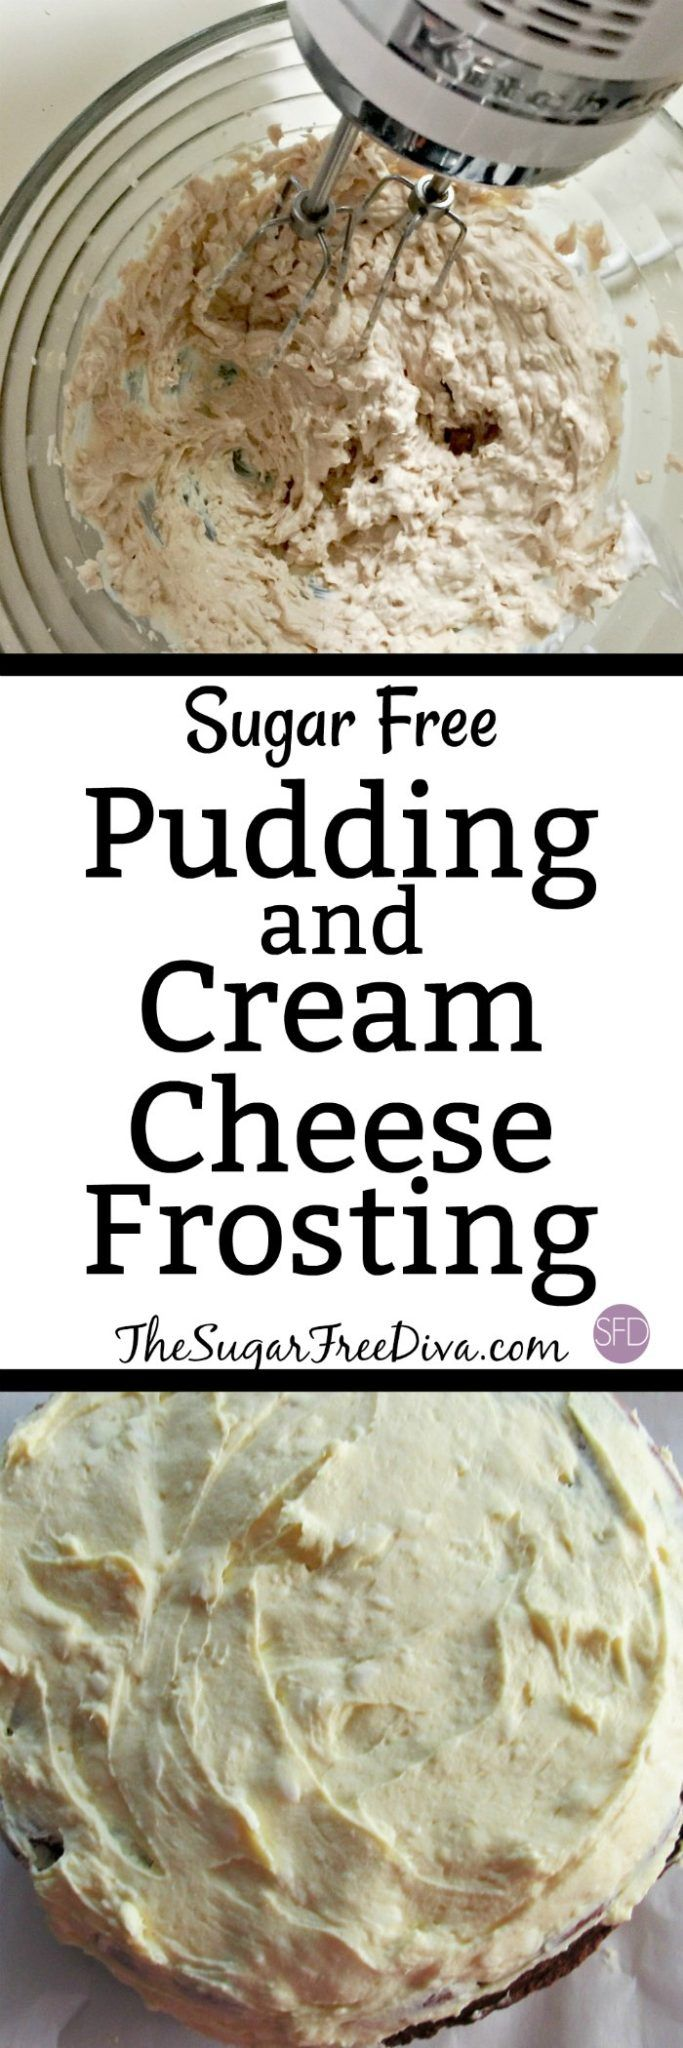 Sugar Free Pudding and Cream Cheese Frosting- don't know if i will ever use this but just in case